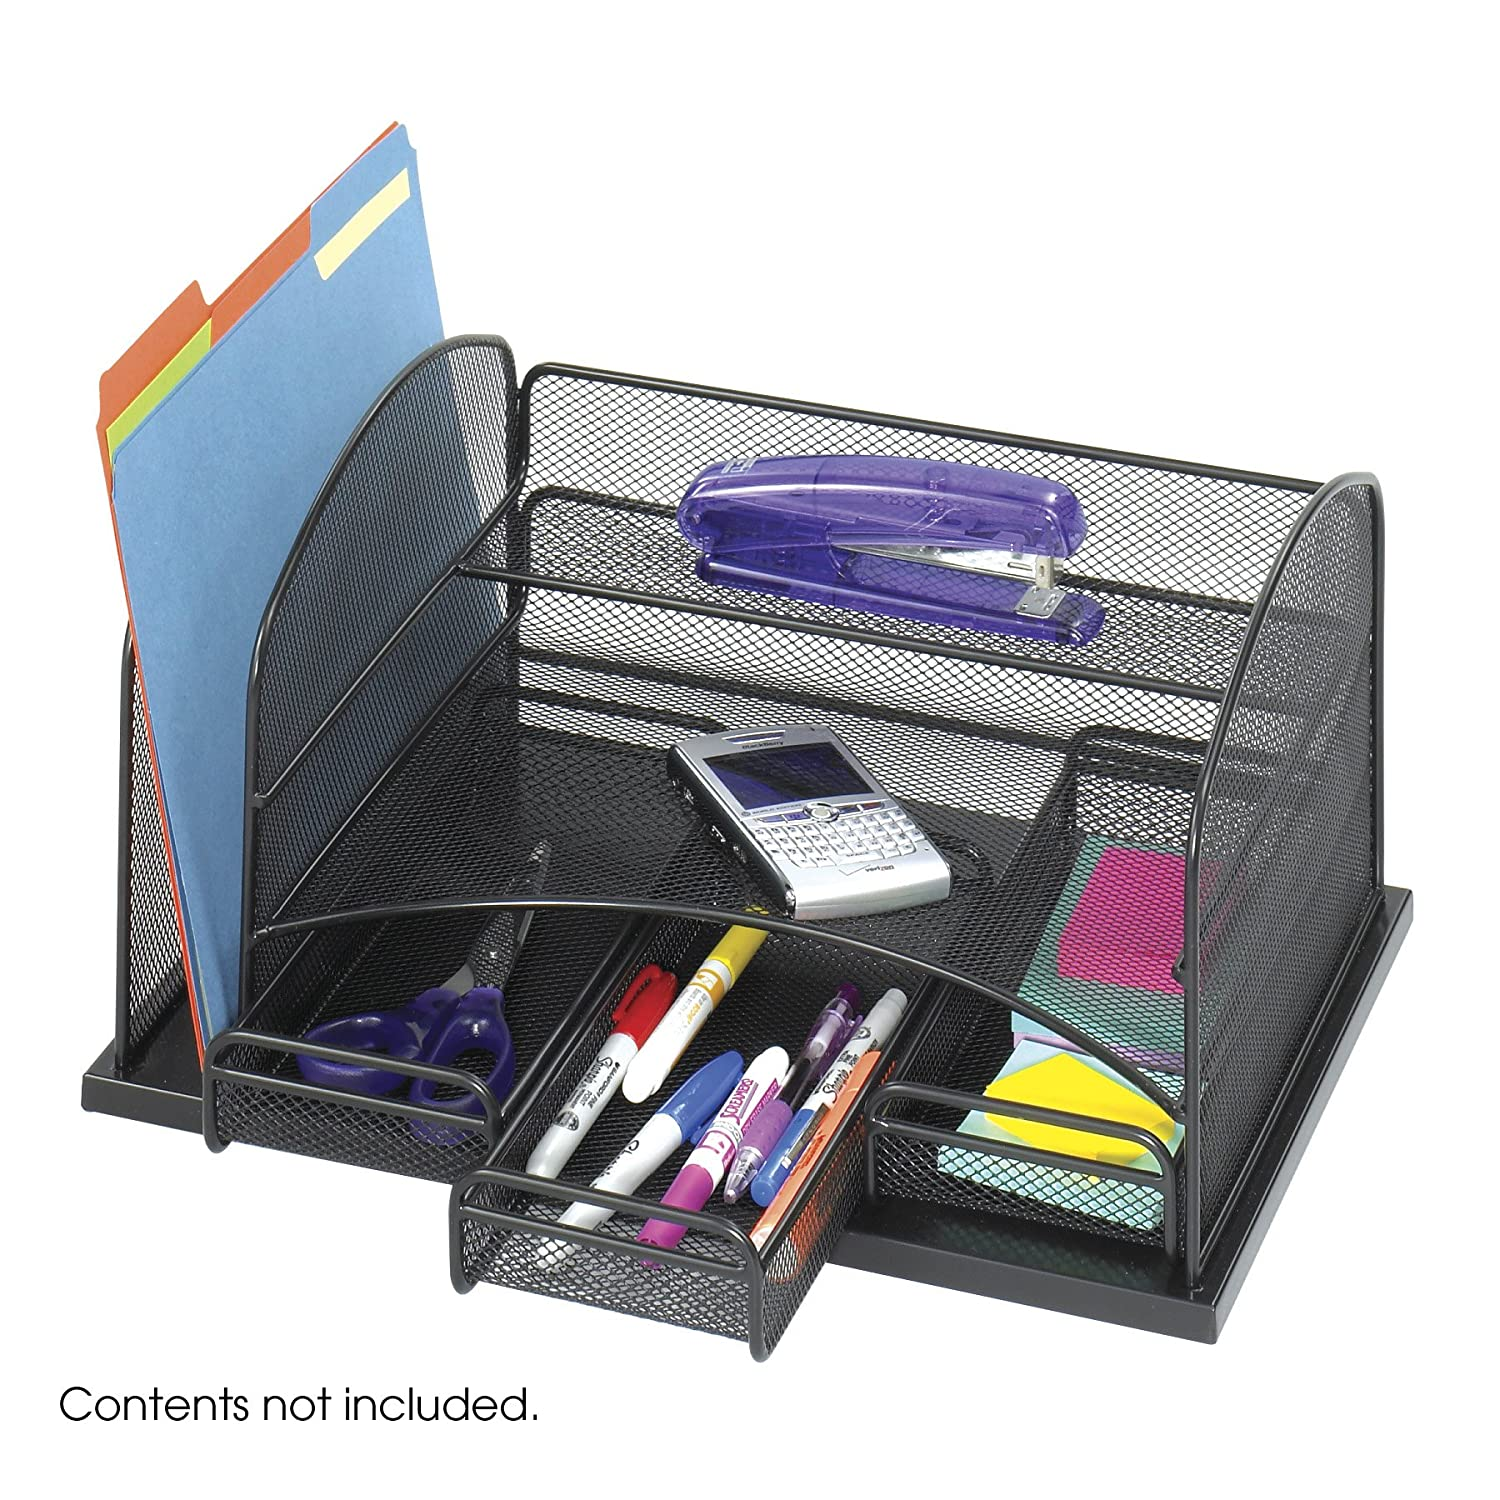 Desk Organiser Stationery Safco Products Onyx Mesh Desk Organizer With 3 Drawers